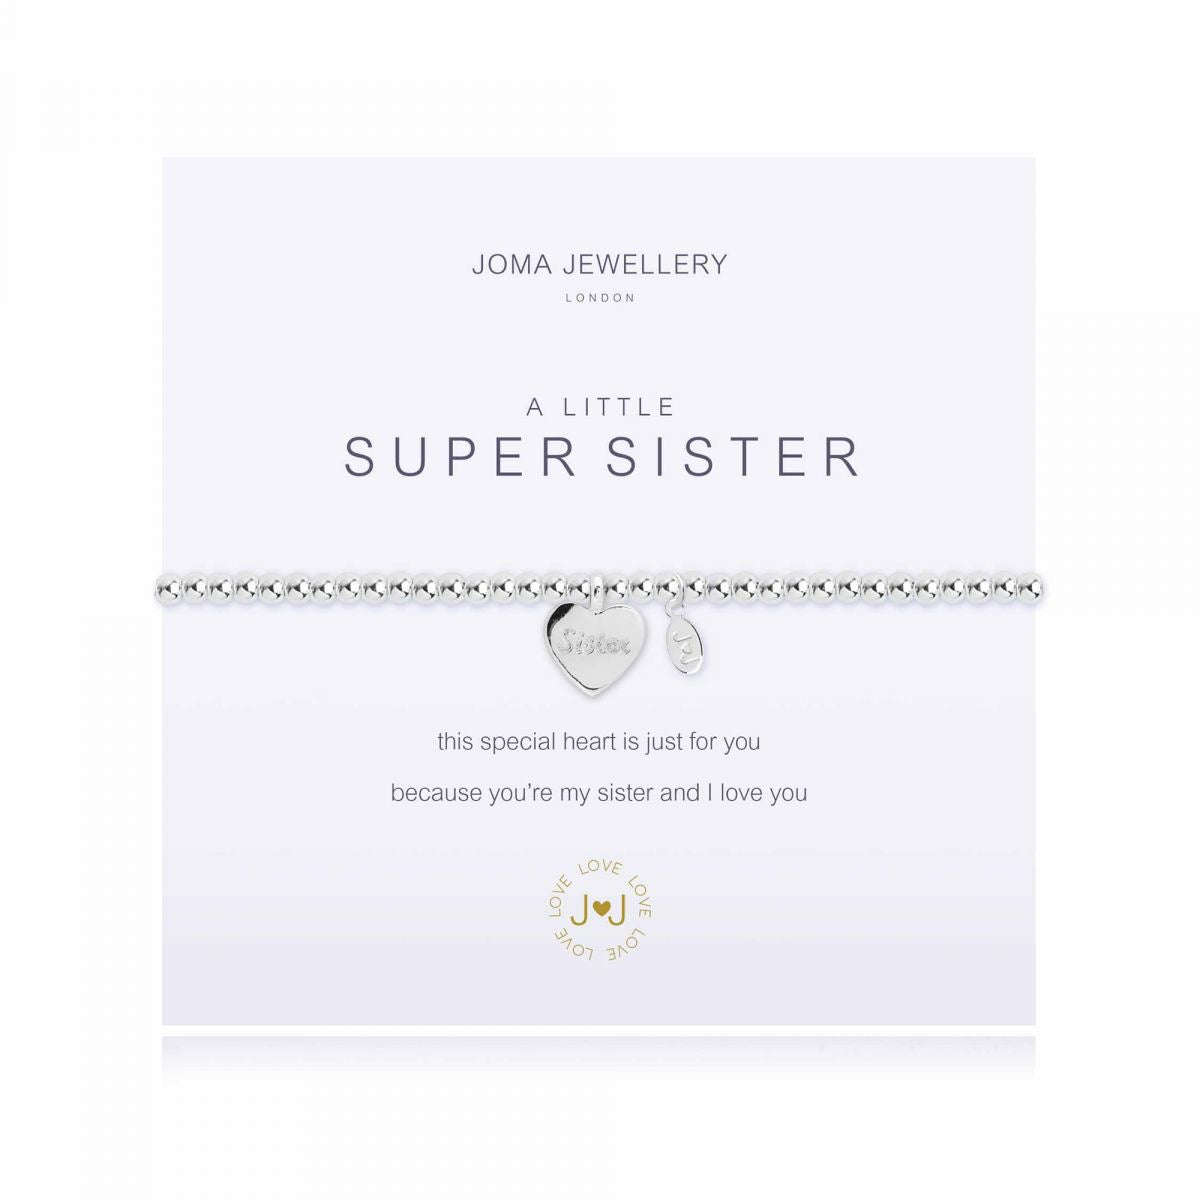 Joma Jewellery 'A Little' Super Sister